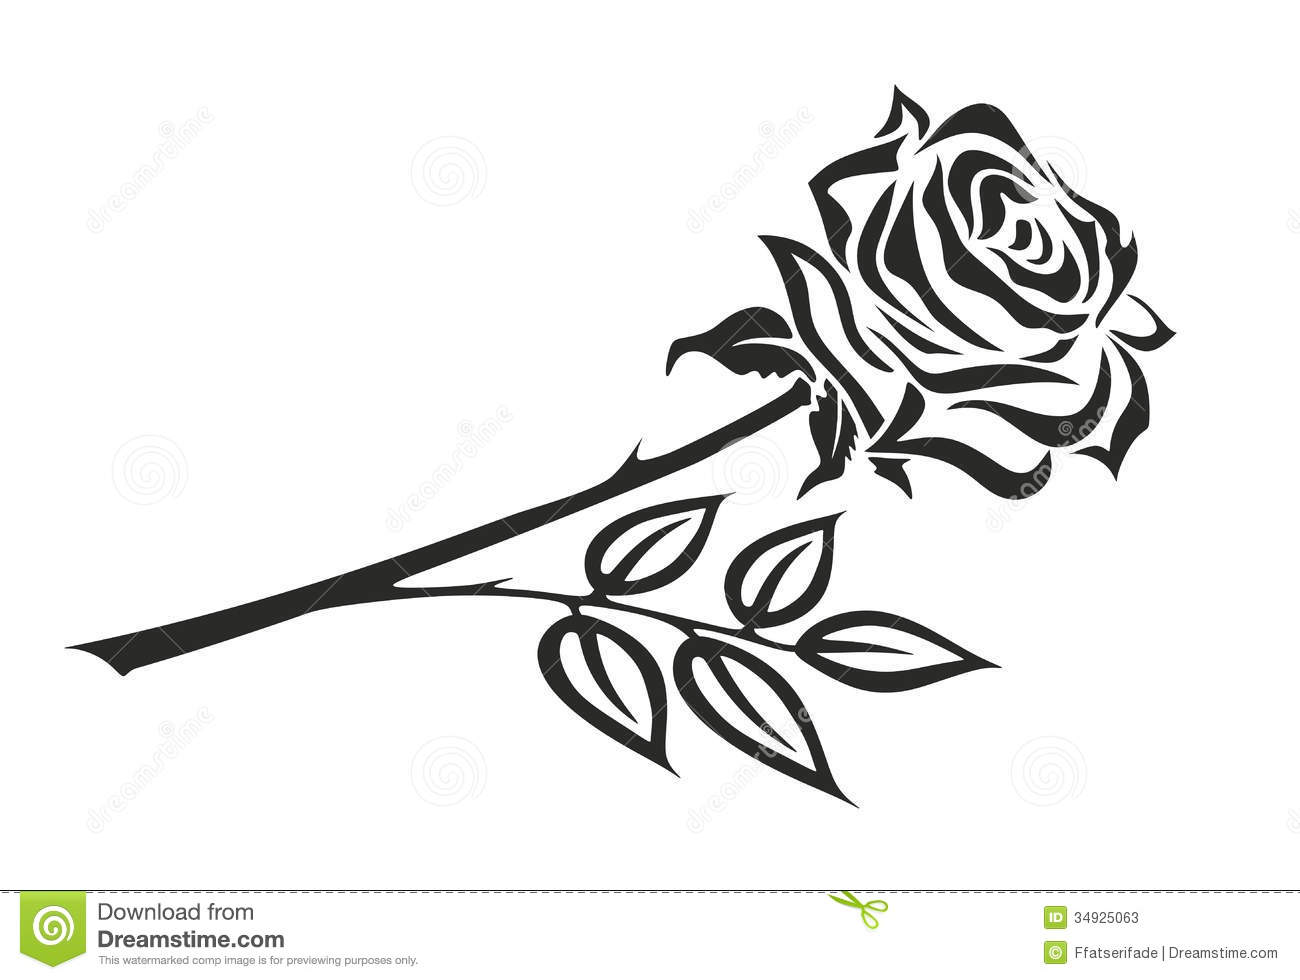 Black Rose Clipart - Clipart Kid